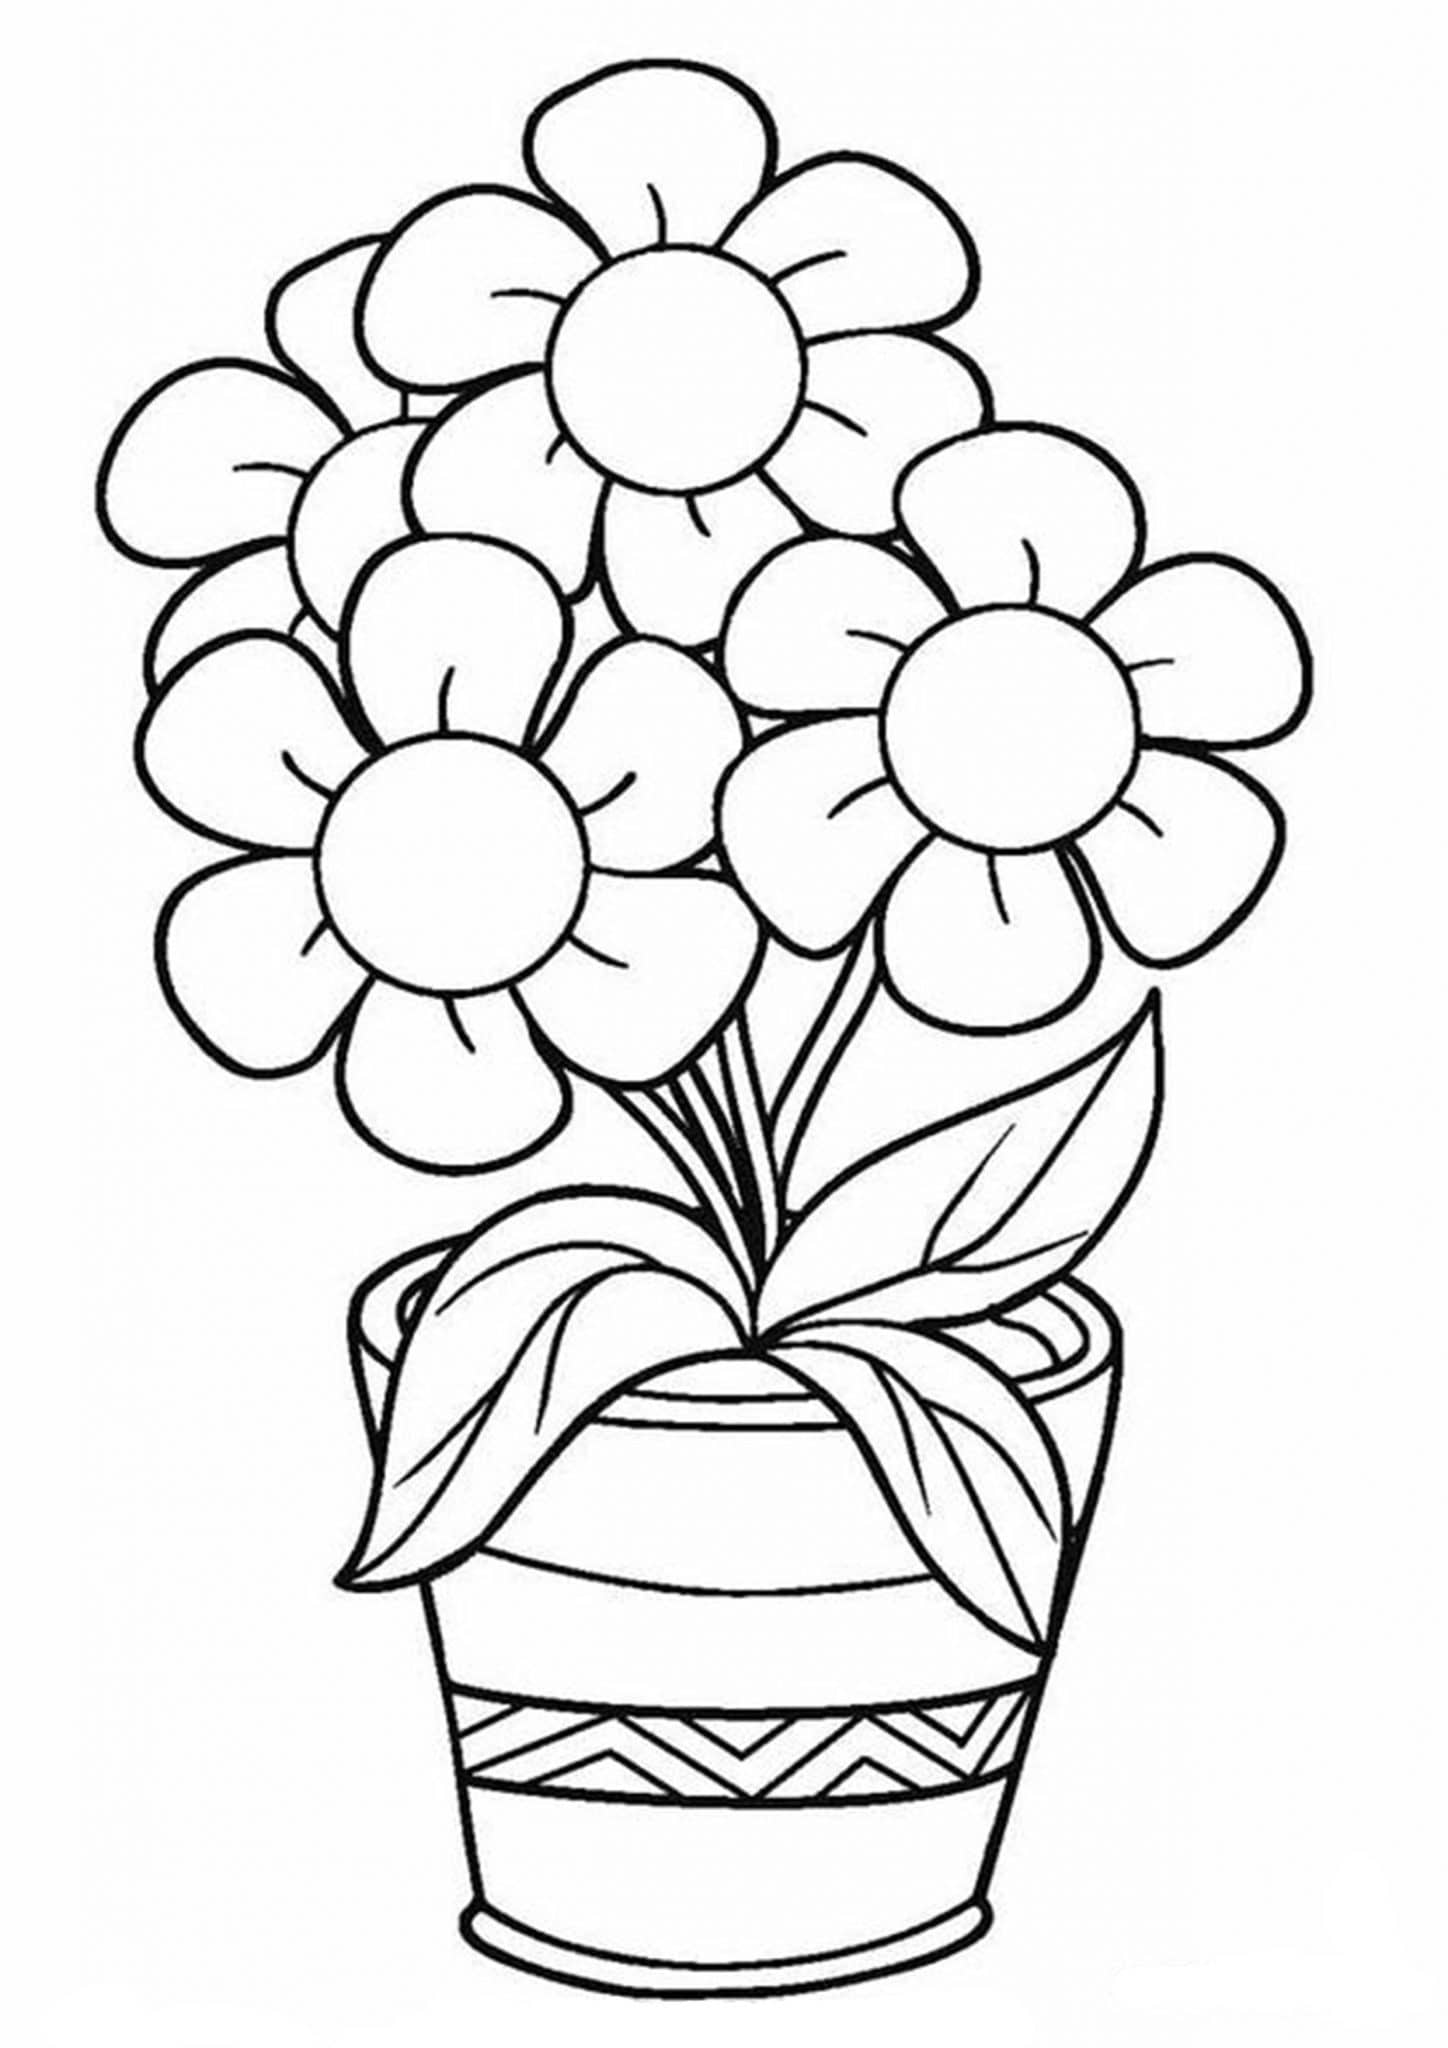 printable flower pictures free printable hibiscus coloring pages for kids flower pictures printable